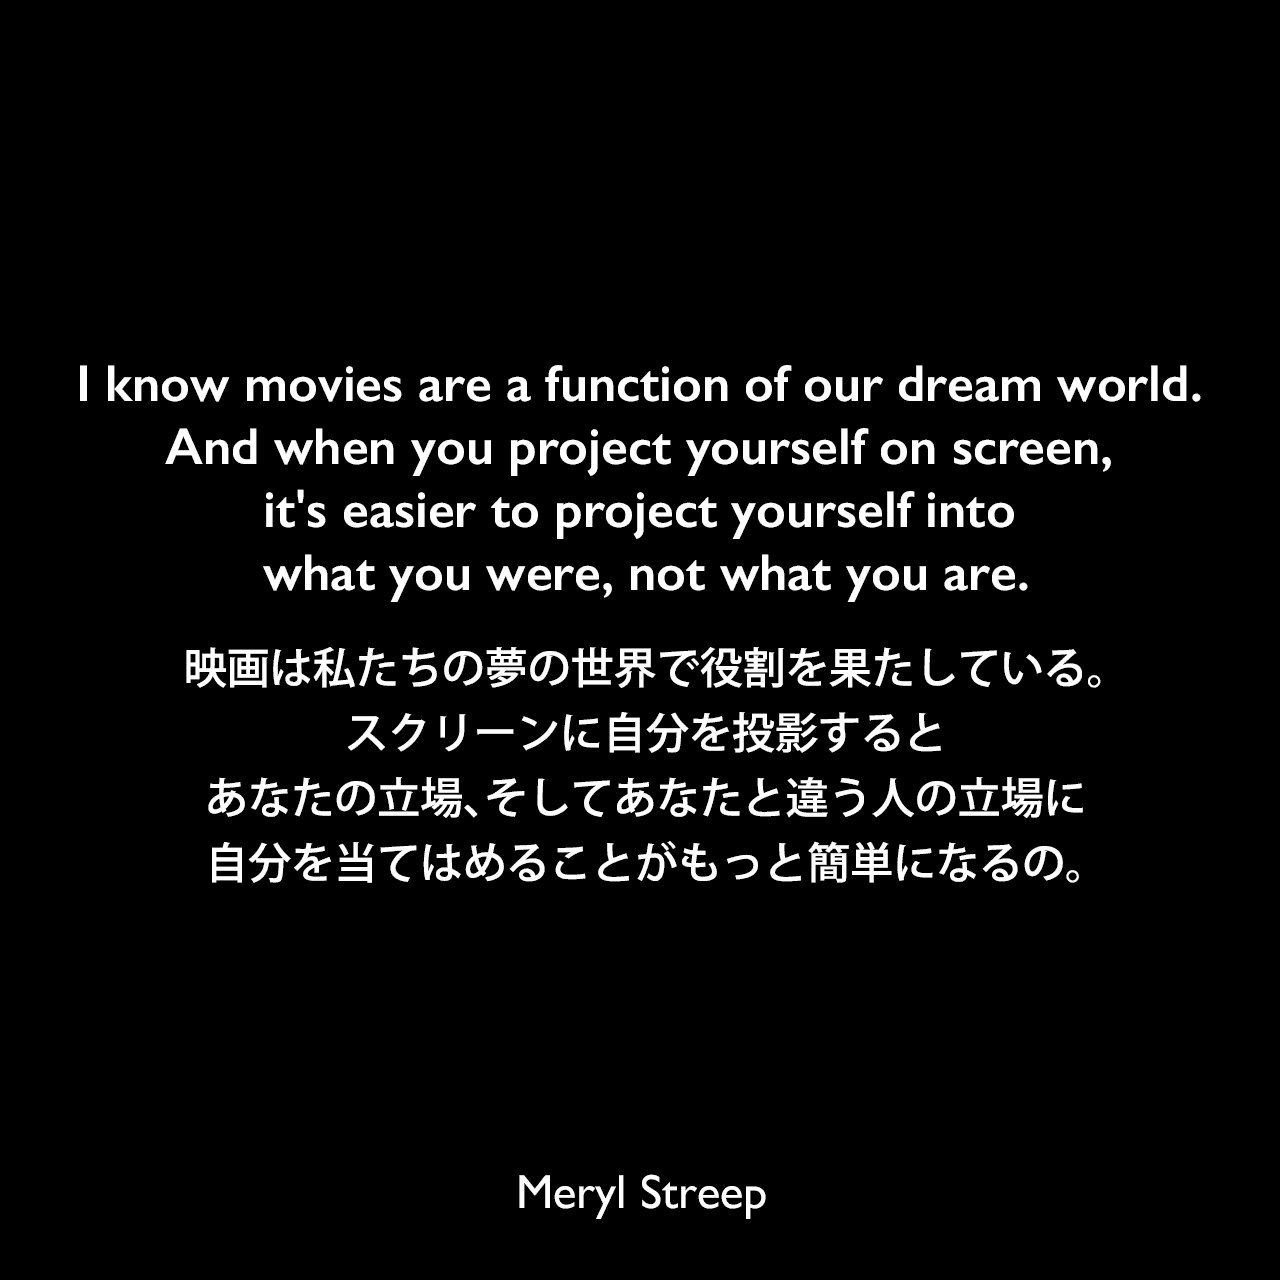 I know movies are a function of our dream world. And when you project yourself on screen, it's easier to project yourself into what you were, not what you are.映画は私たちの夢の世界で役割を果たしている。スクリーンに自分を投影すると、あなたの立場、そしてあなたと違う人の立場に自分を当てはめることがもっと簡単になるの。Meryl Streep